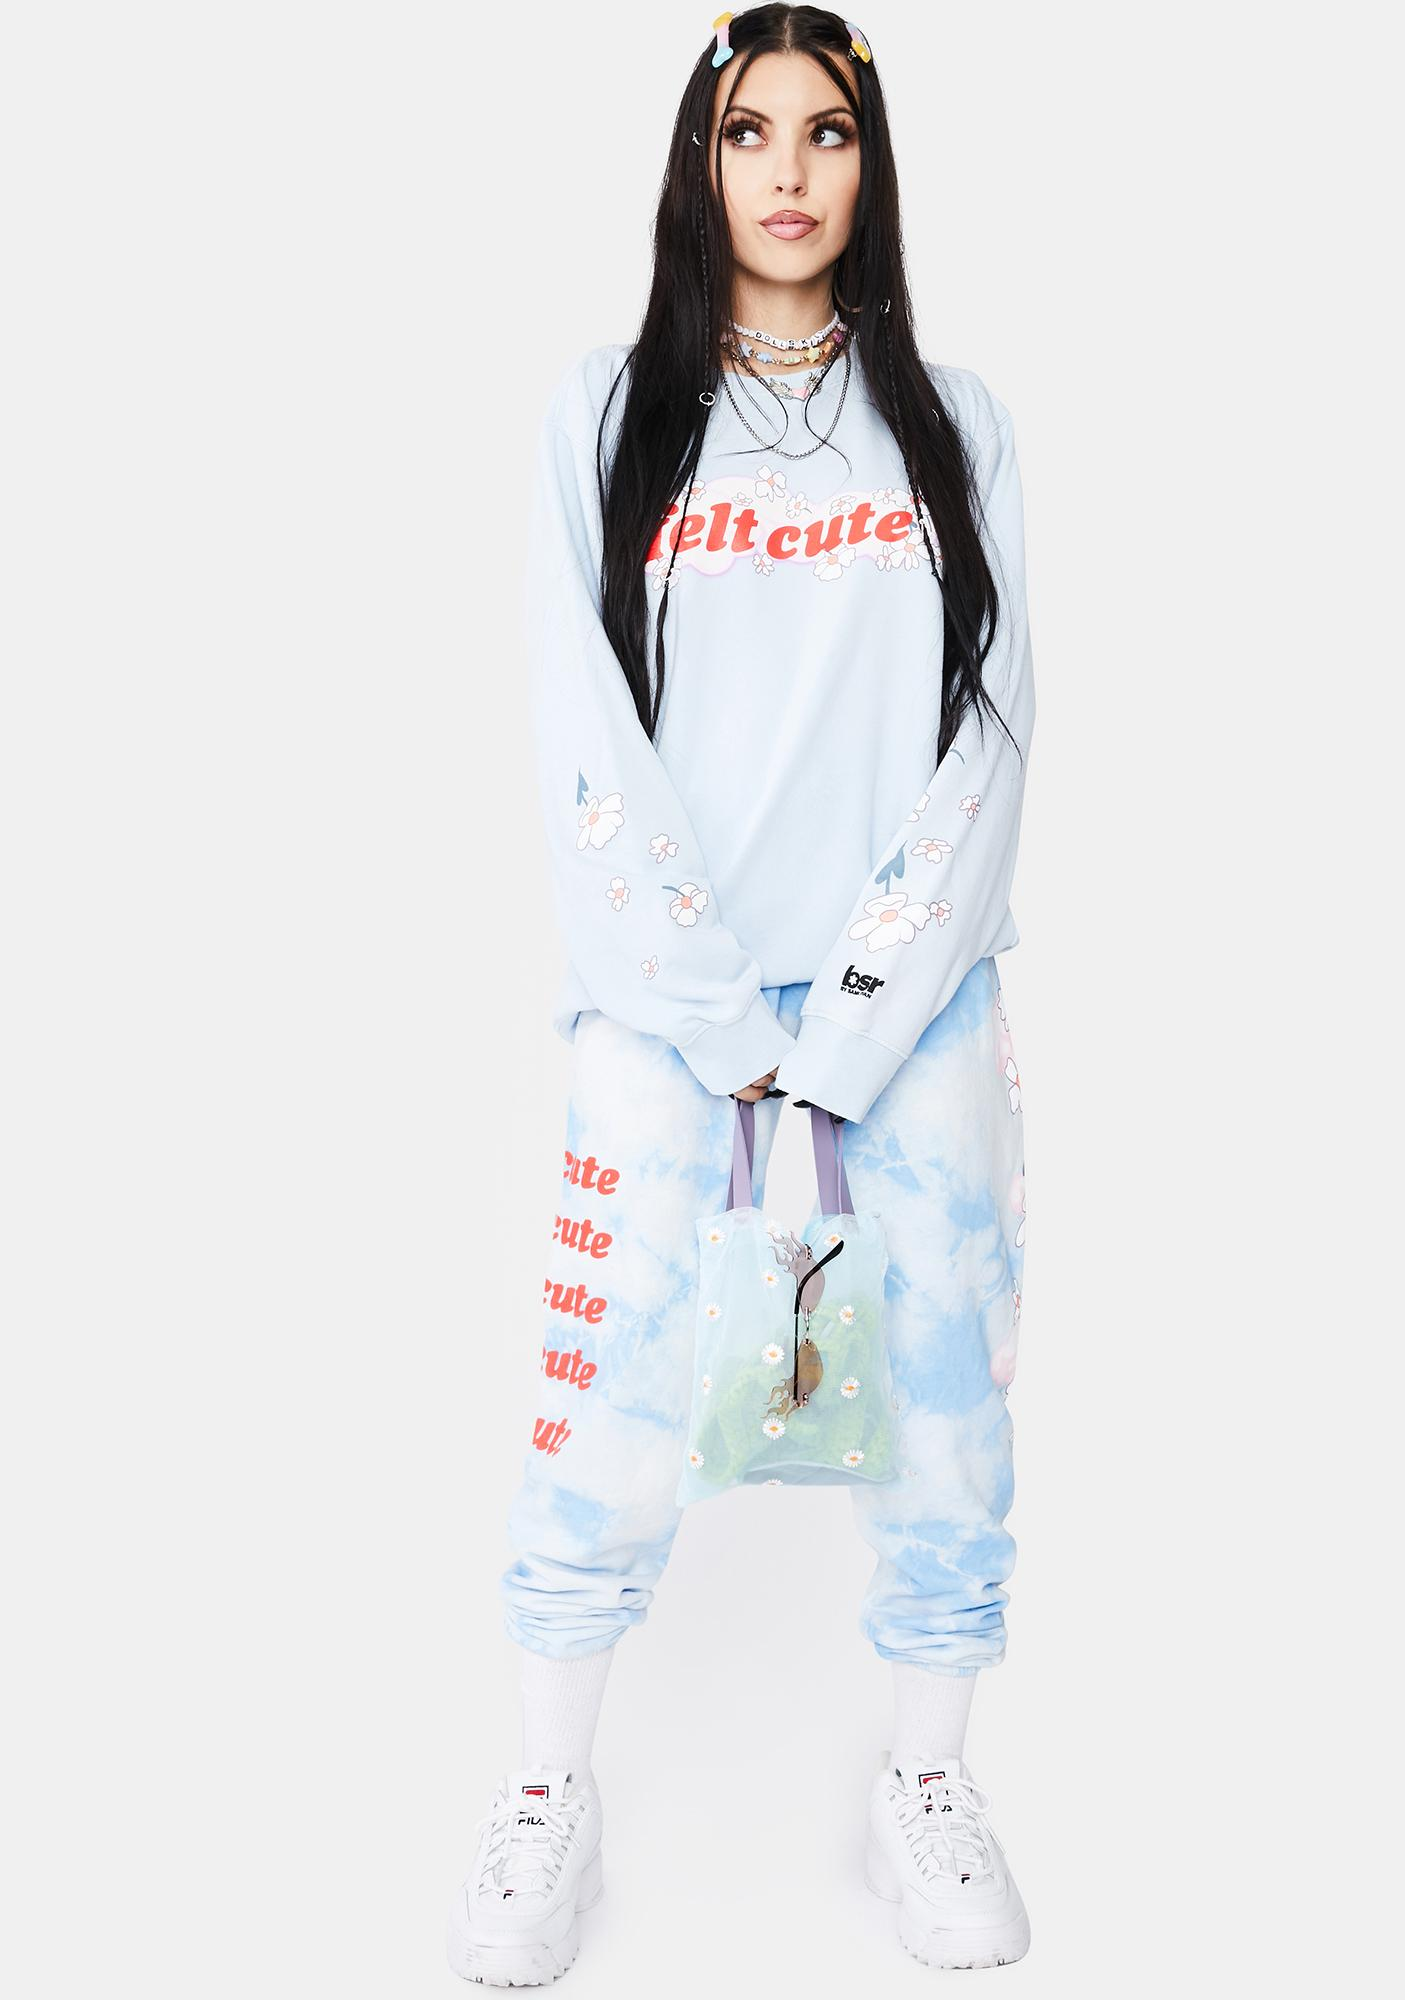 By Samii Ryan Felt Cute Tie Dye Sweats